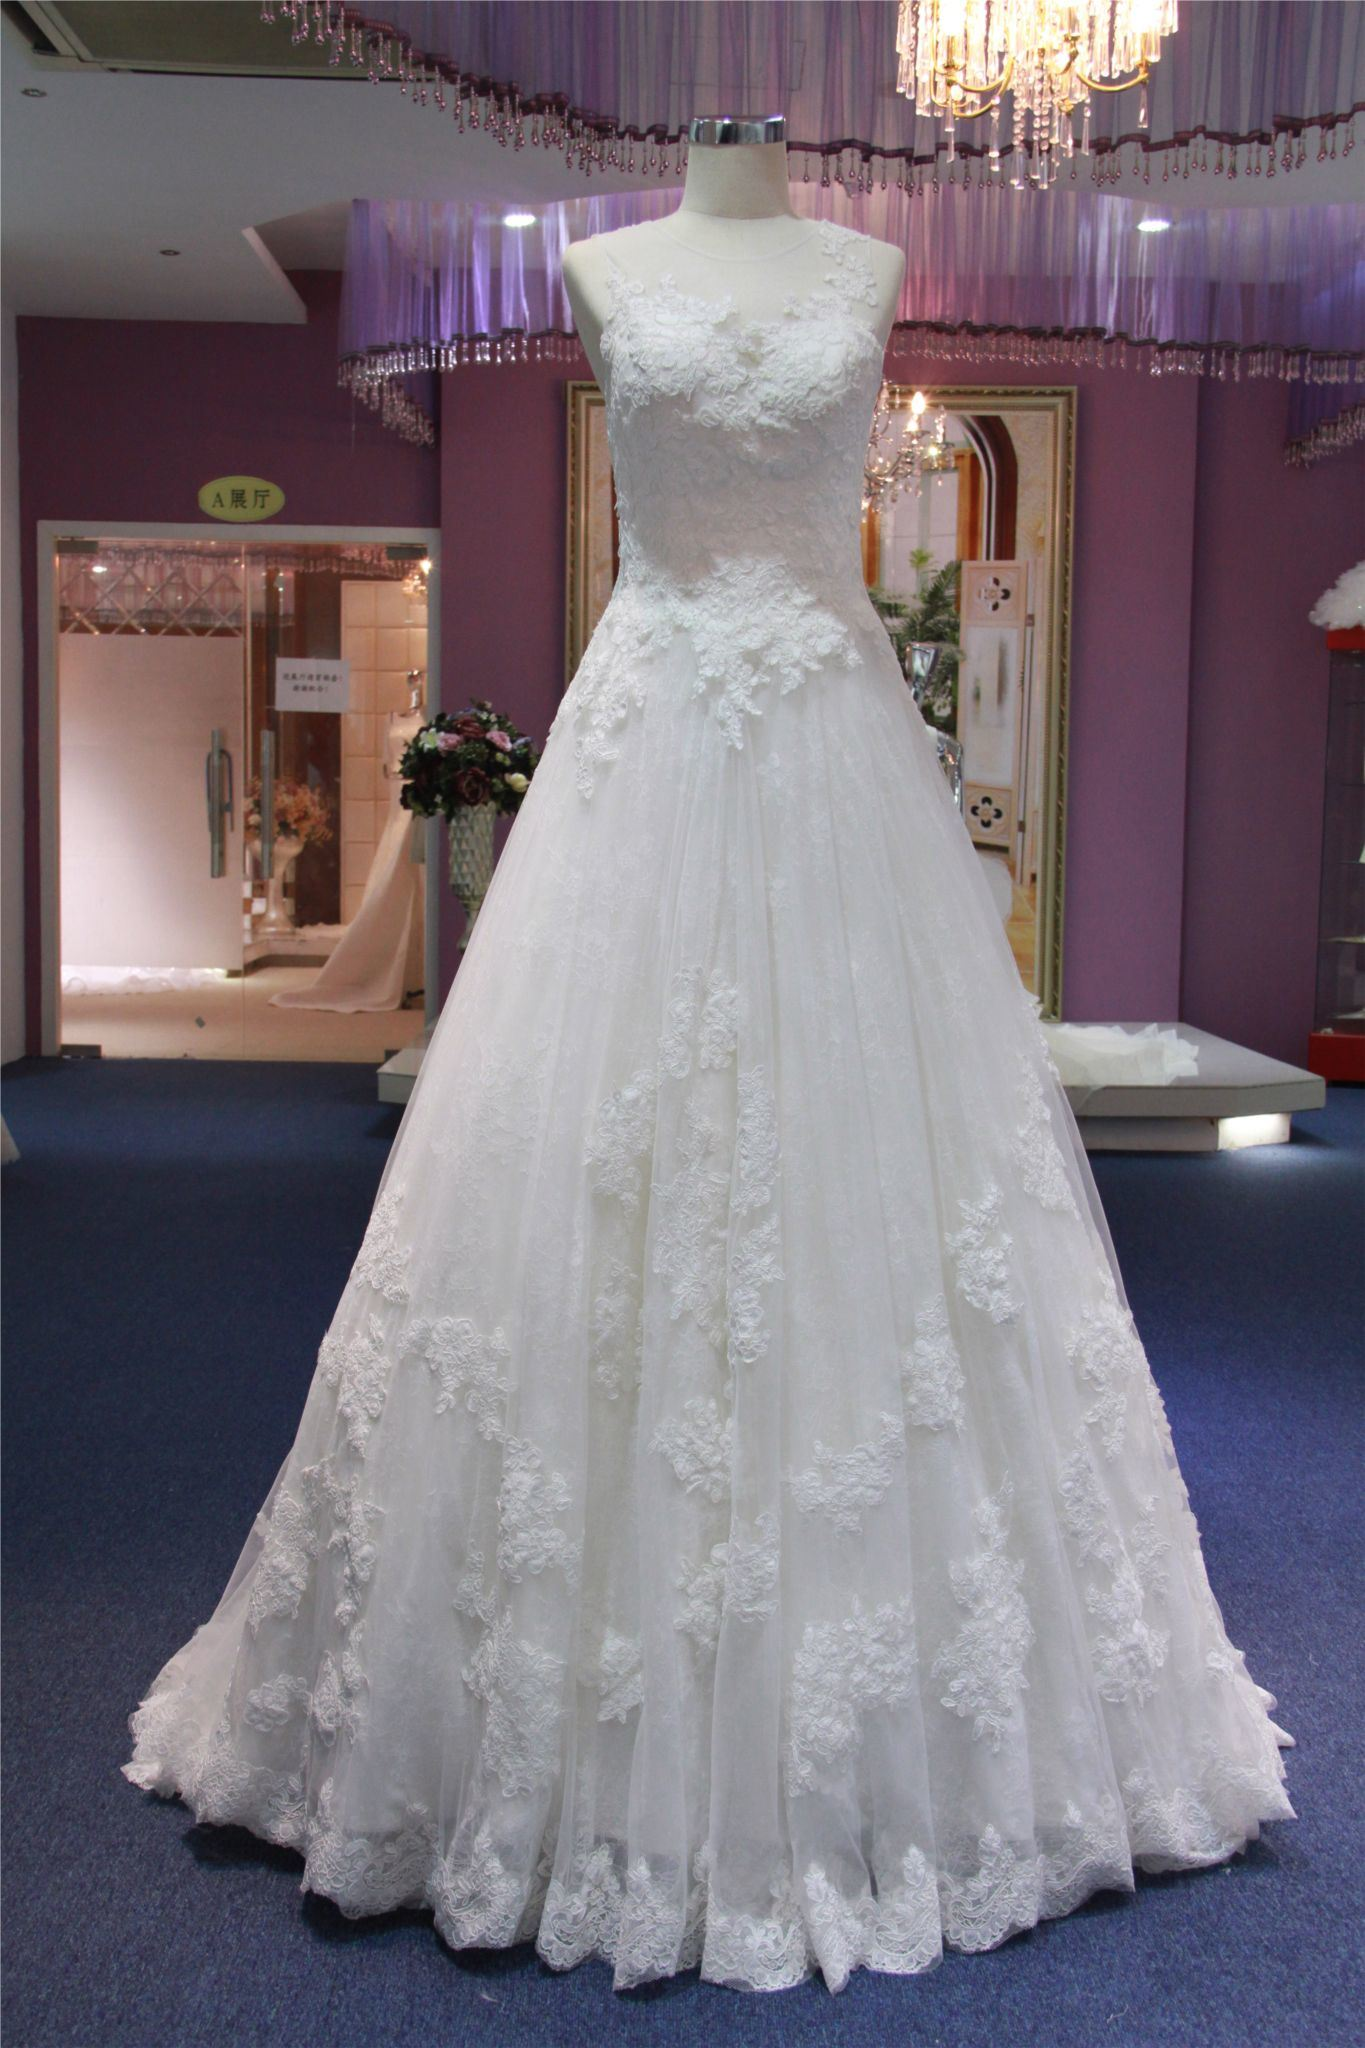 56d0a88925b6 Wedding Dresses Made In China For Sale - Aztec Stone and Reclamations